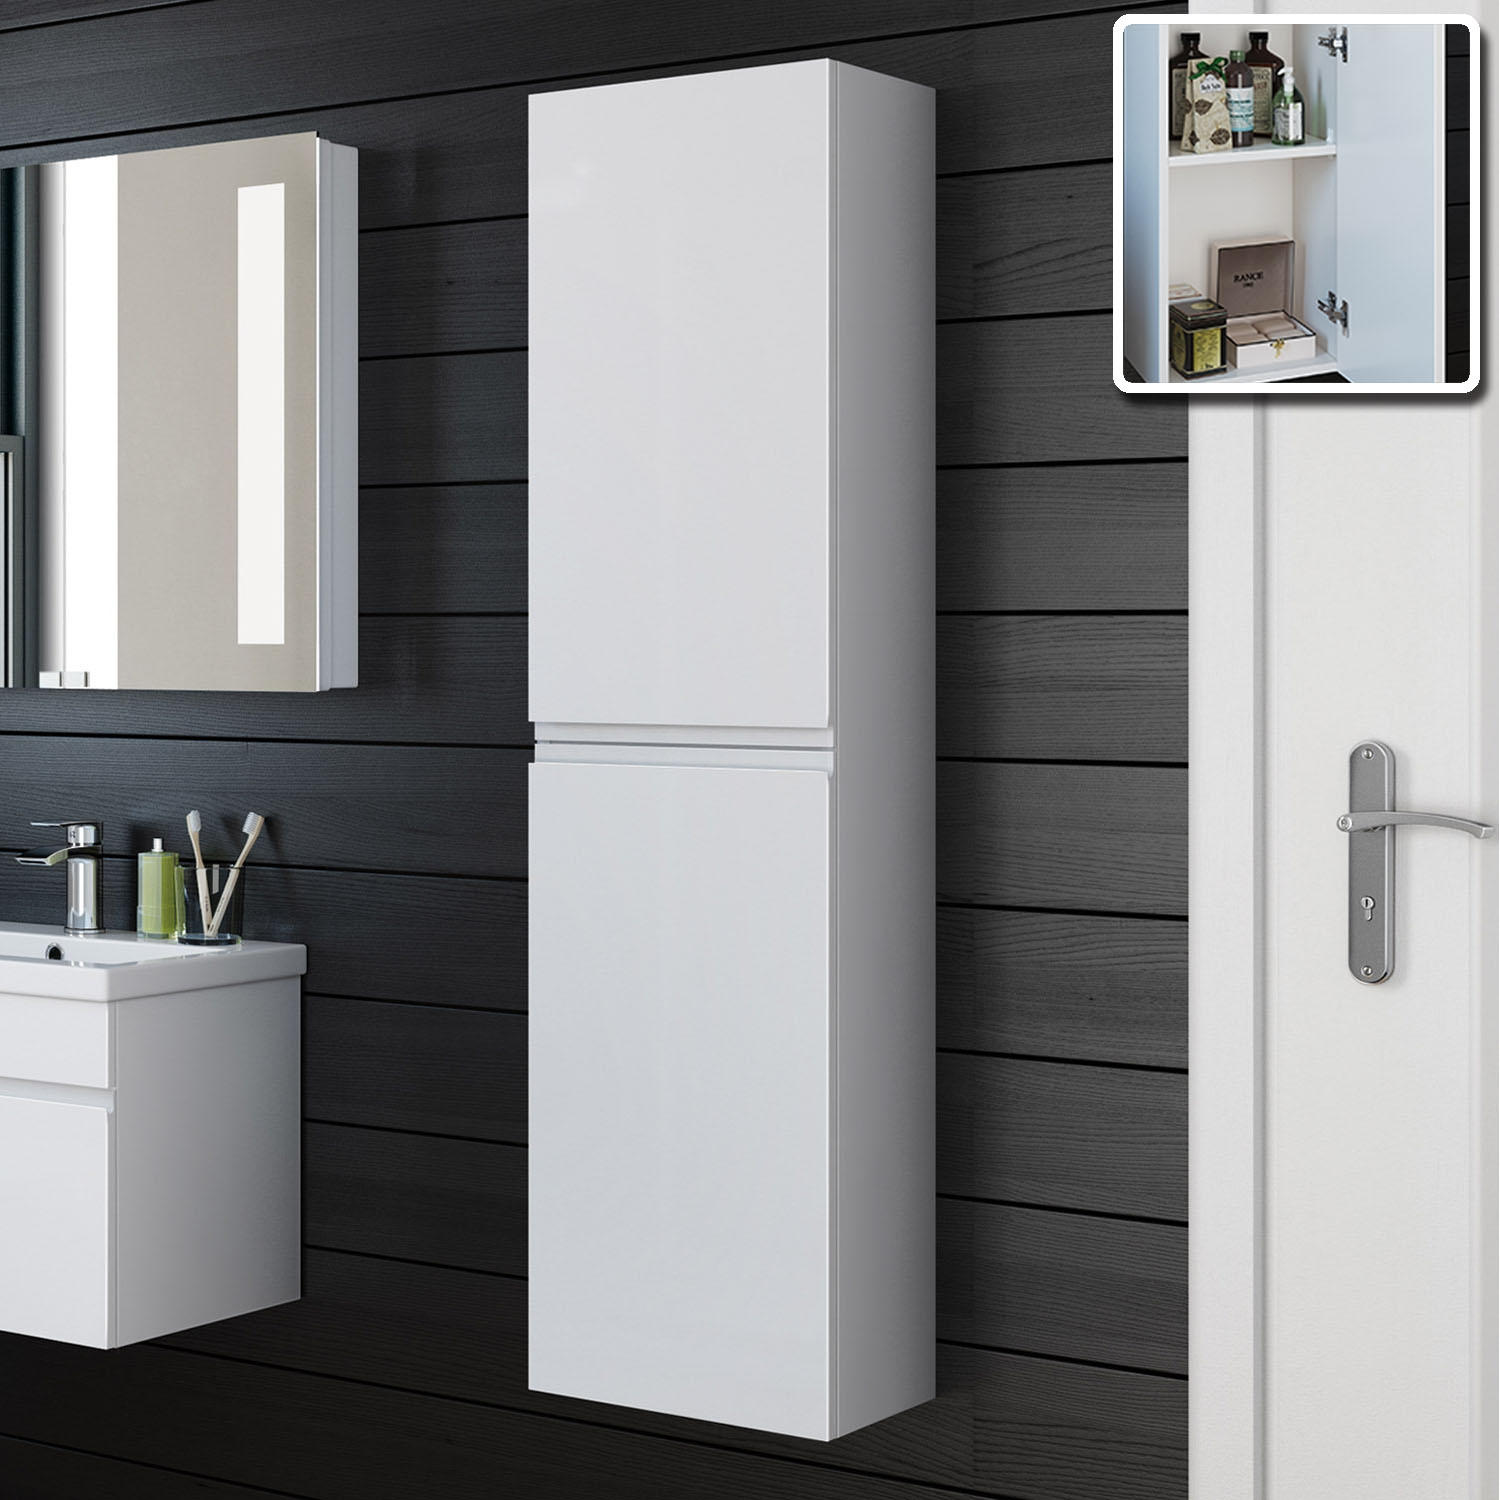 Permalink to Tall Slim Gloss Bathroom Cabinet